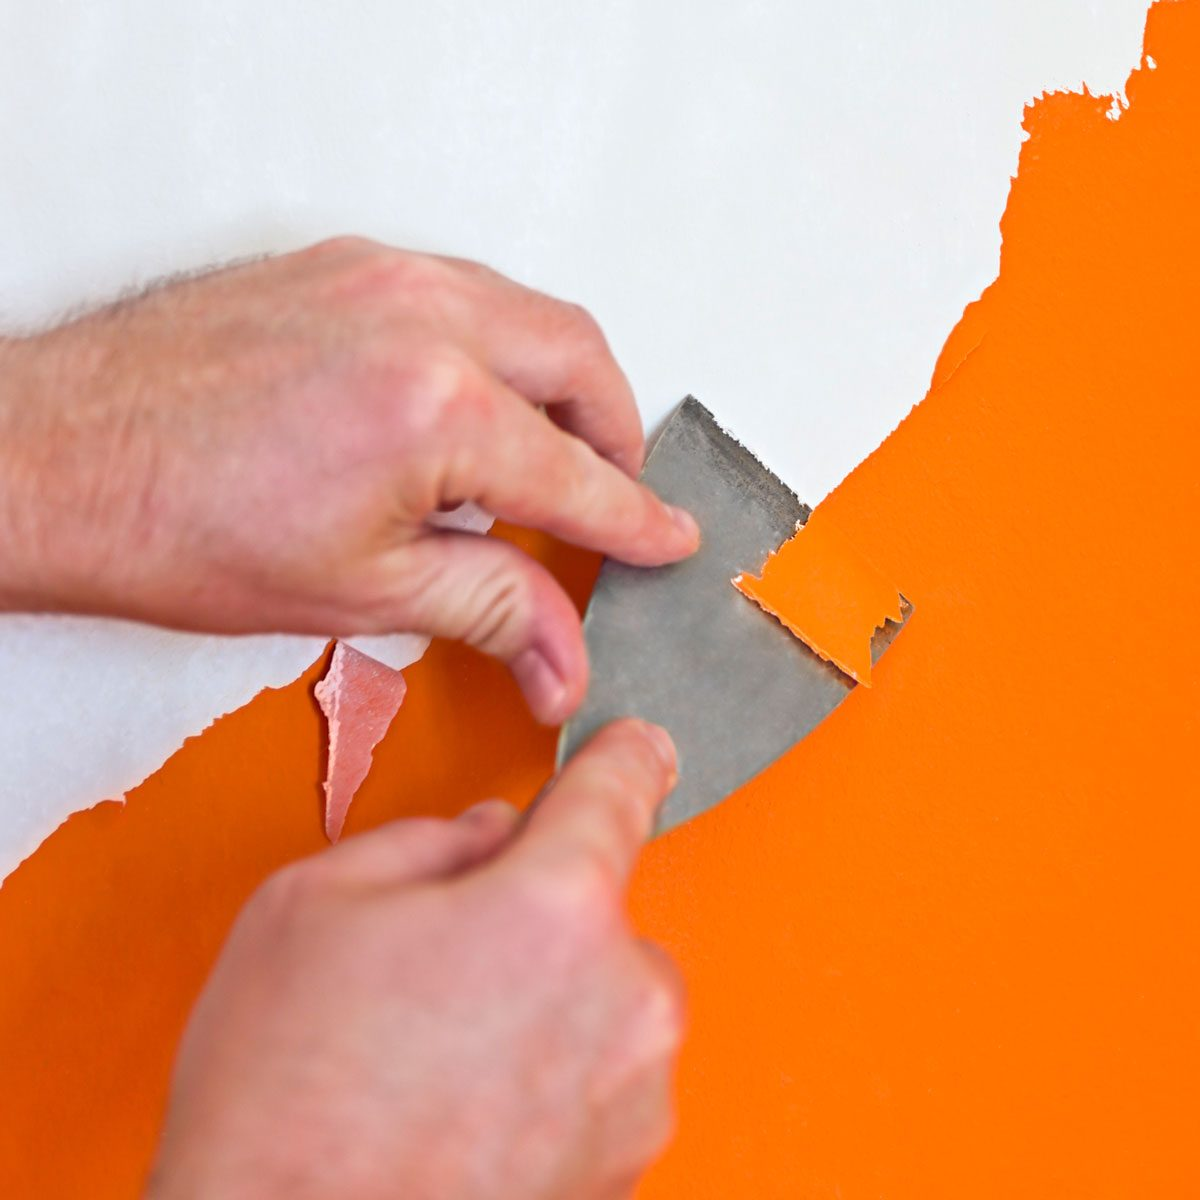 Removing Paint Gettyimages 157638690